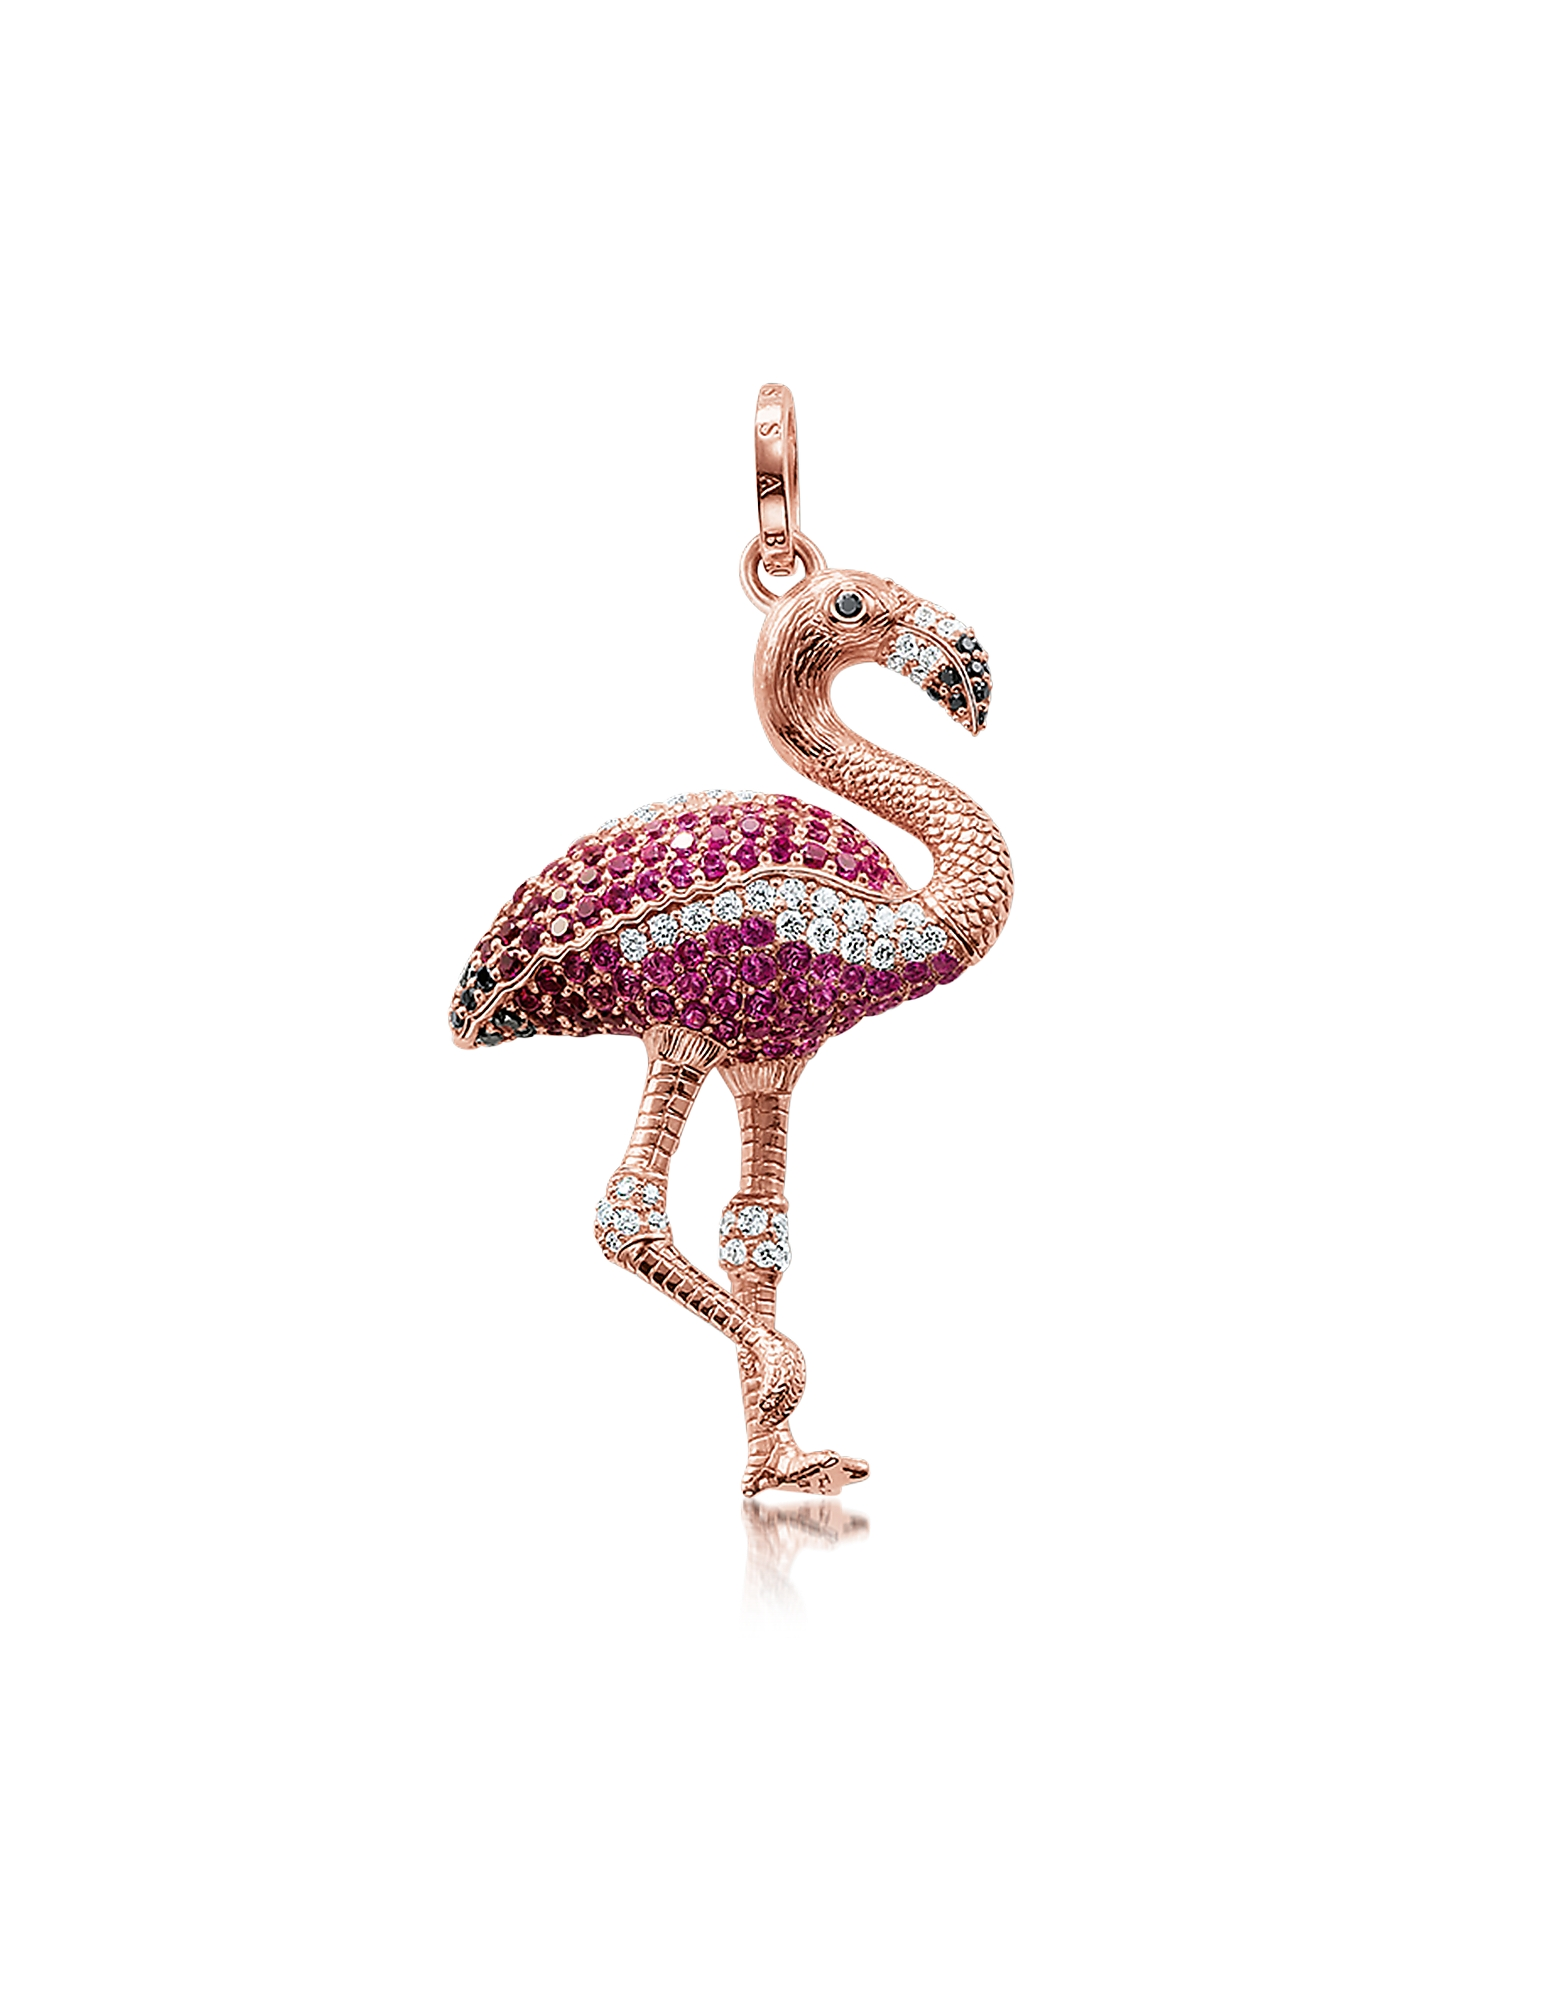 Thomas Sabo Necklaces, Rose Gold Plated Sterling Flamingo Pendant w/Pink Zirconia